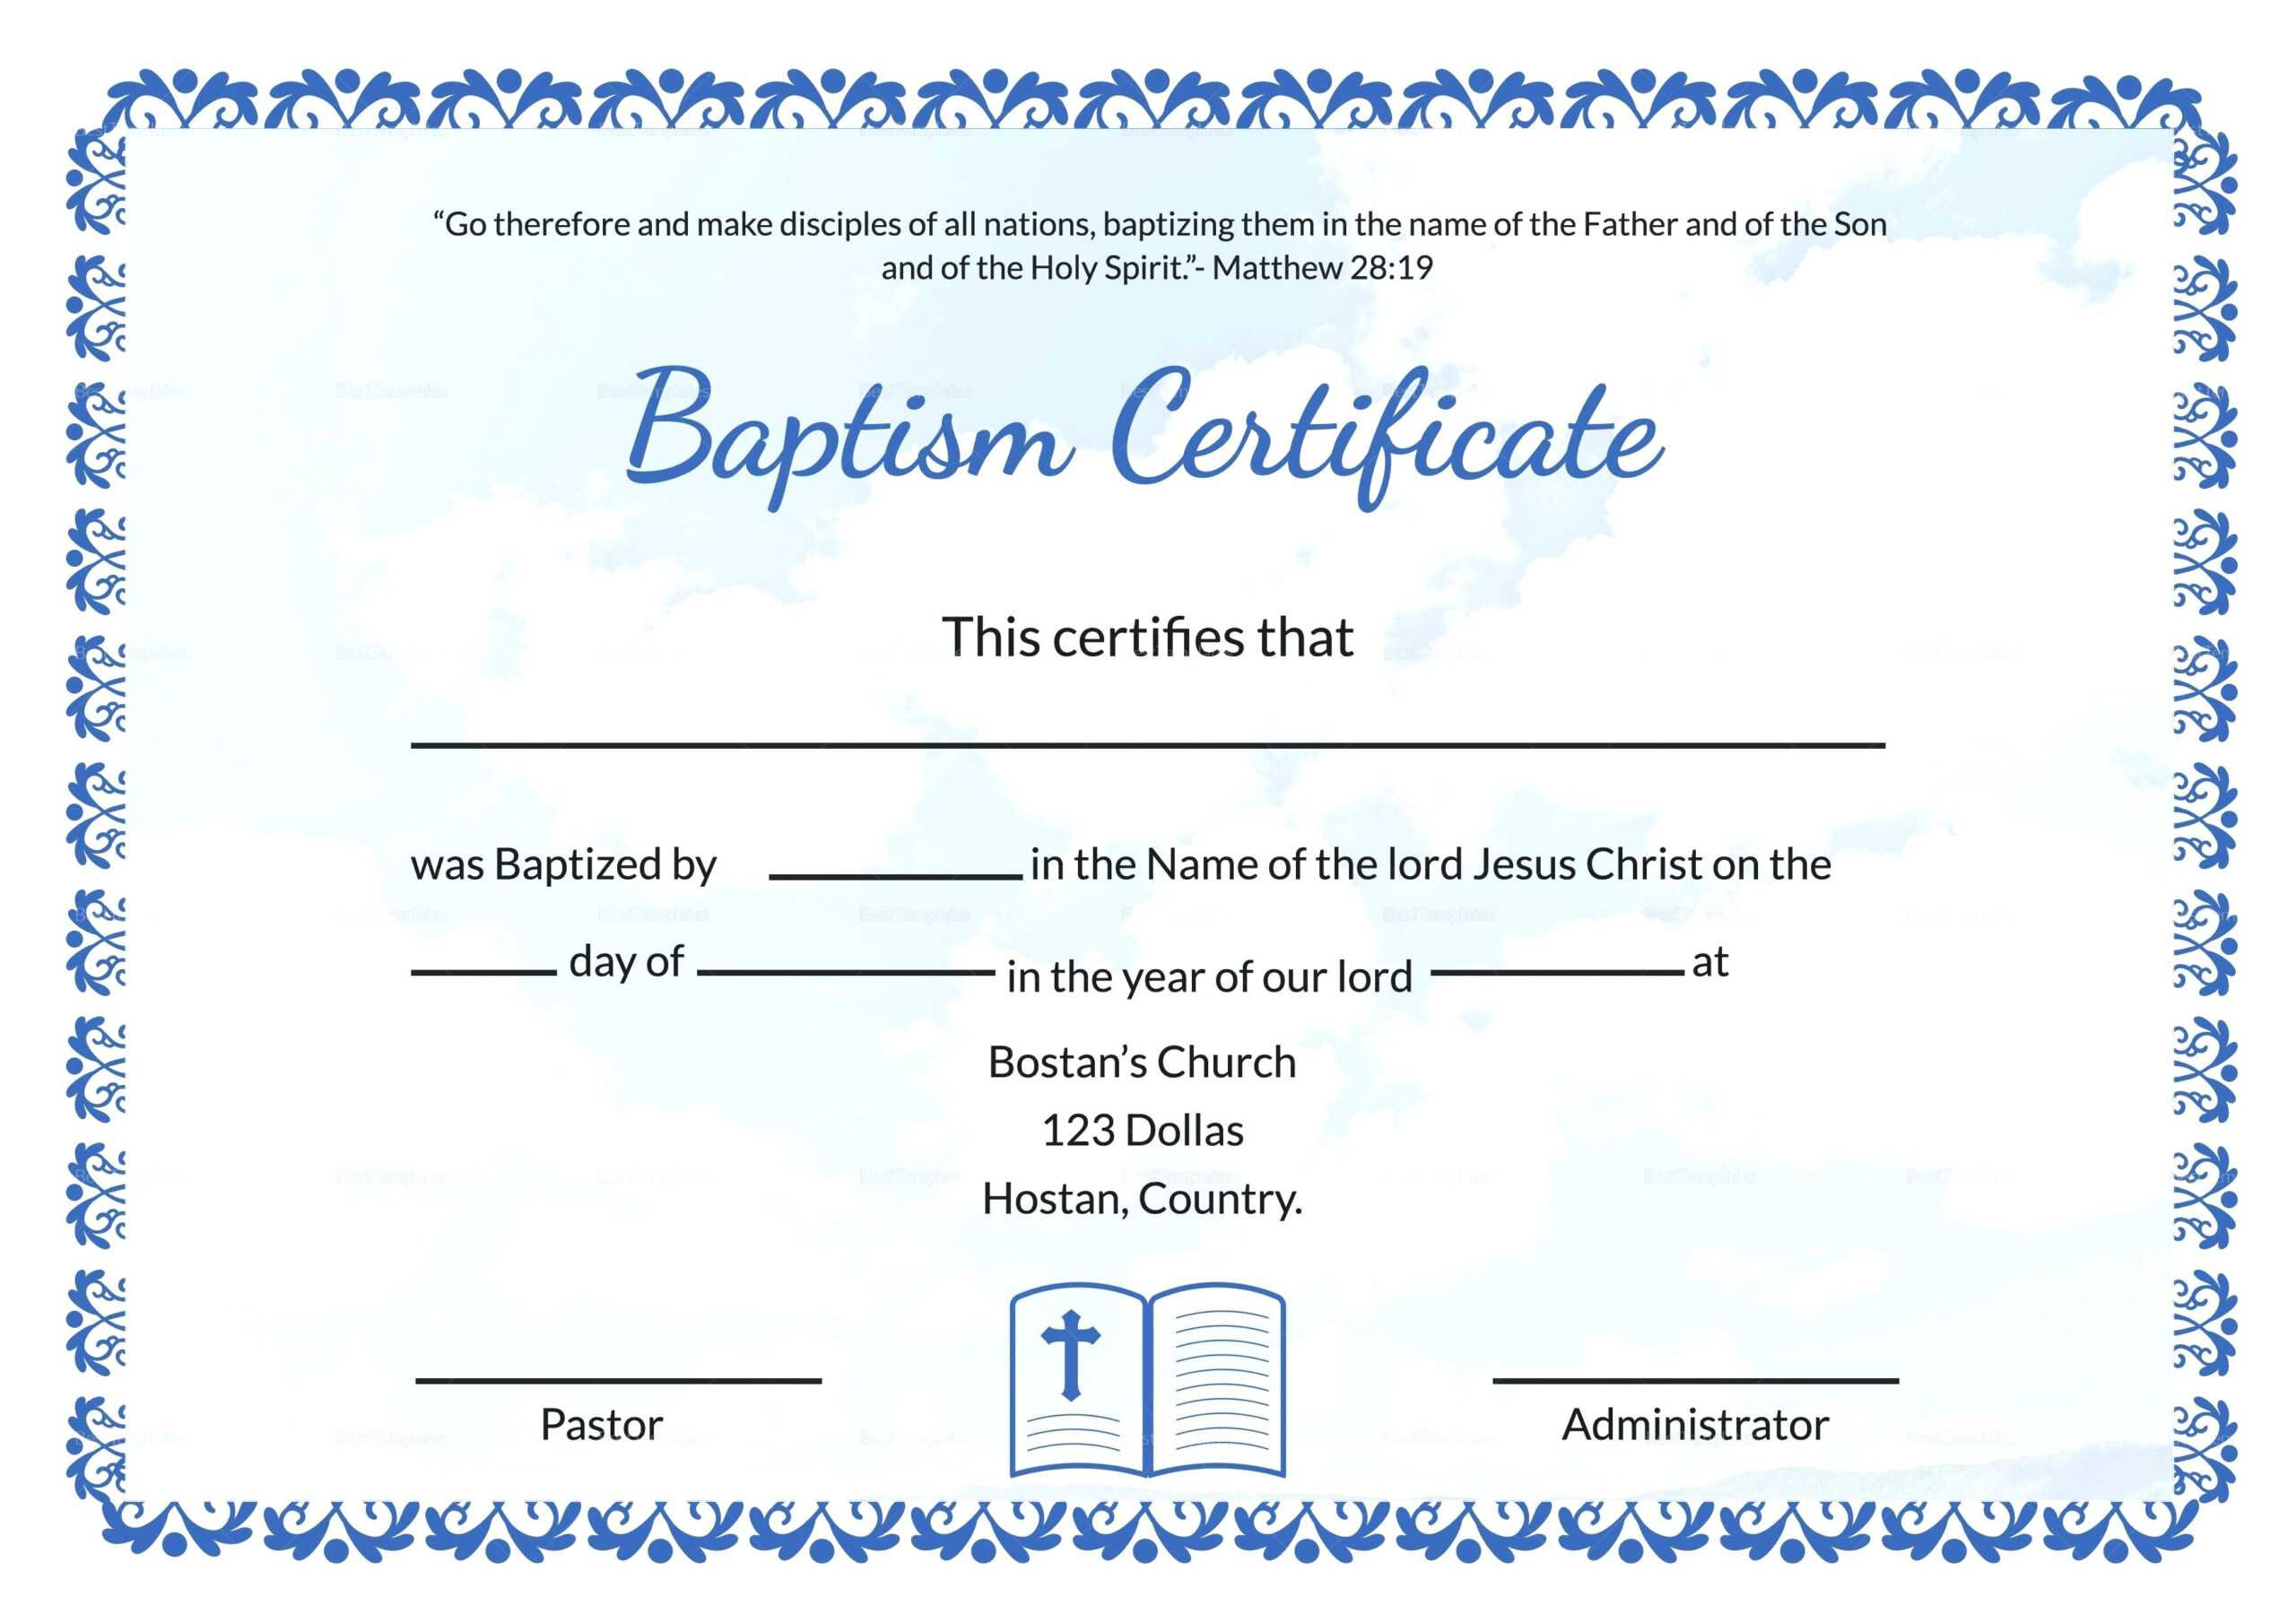 Baptism Certificate Template Word – Heartwork Within Baptism Certificate Template Word